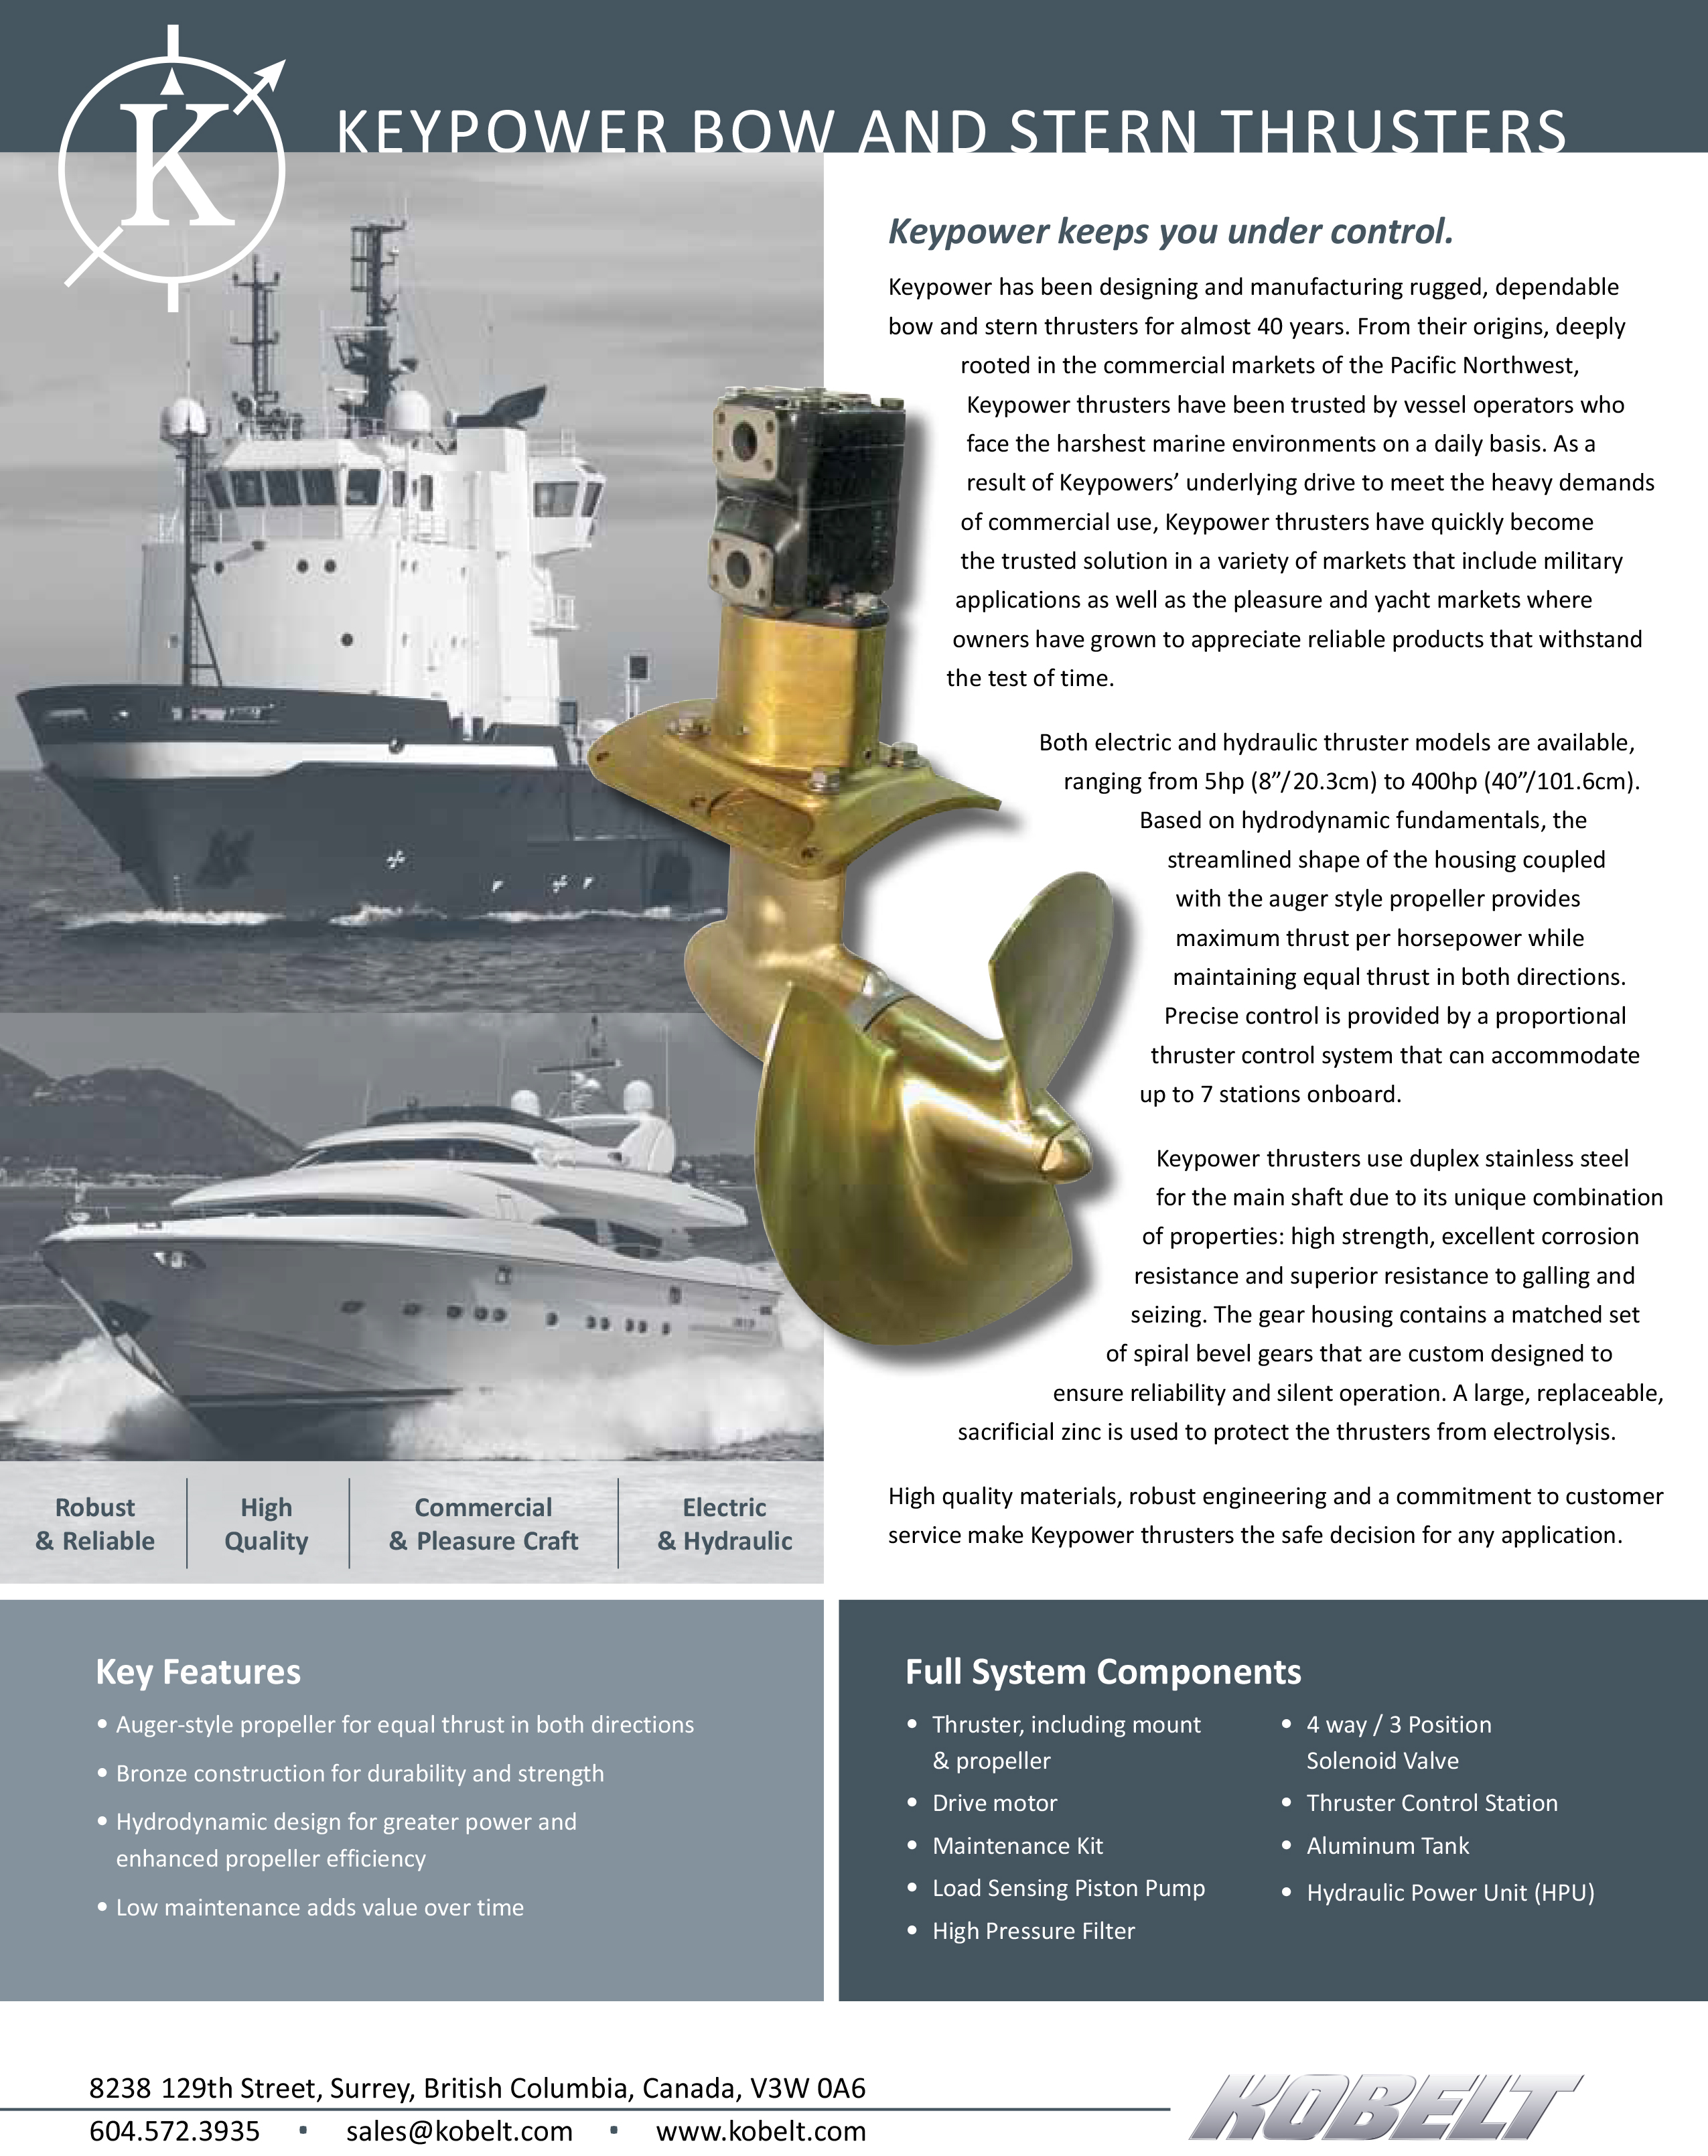 KeyPower Bow and Stern Thrusters Key Features and Components